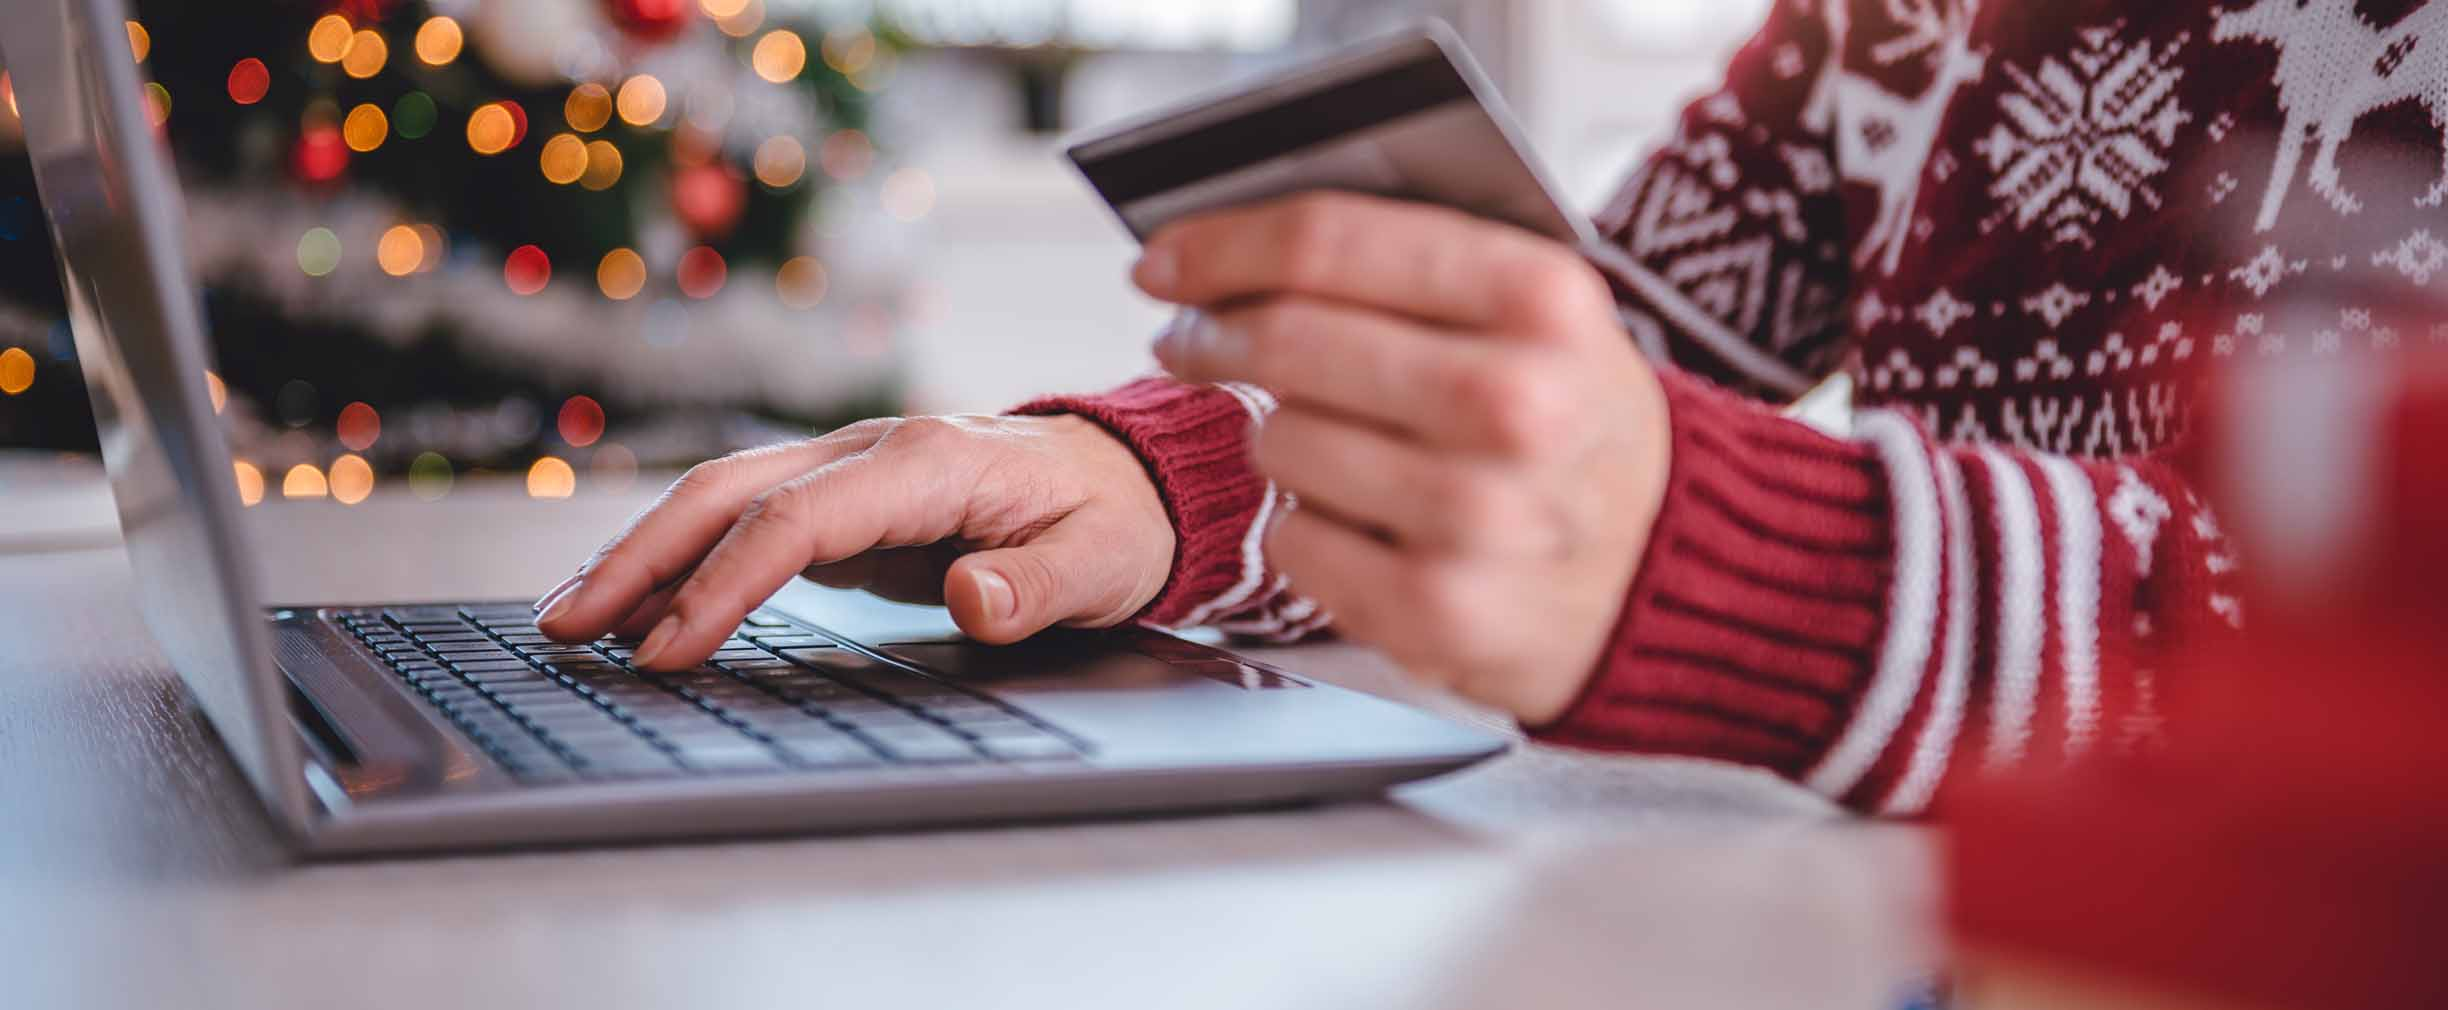 woman with credit card in hand shopping online during holidays